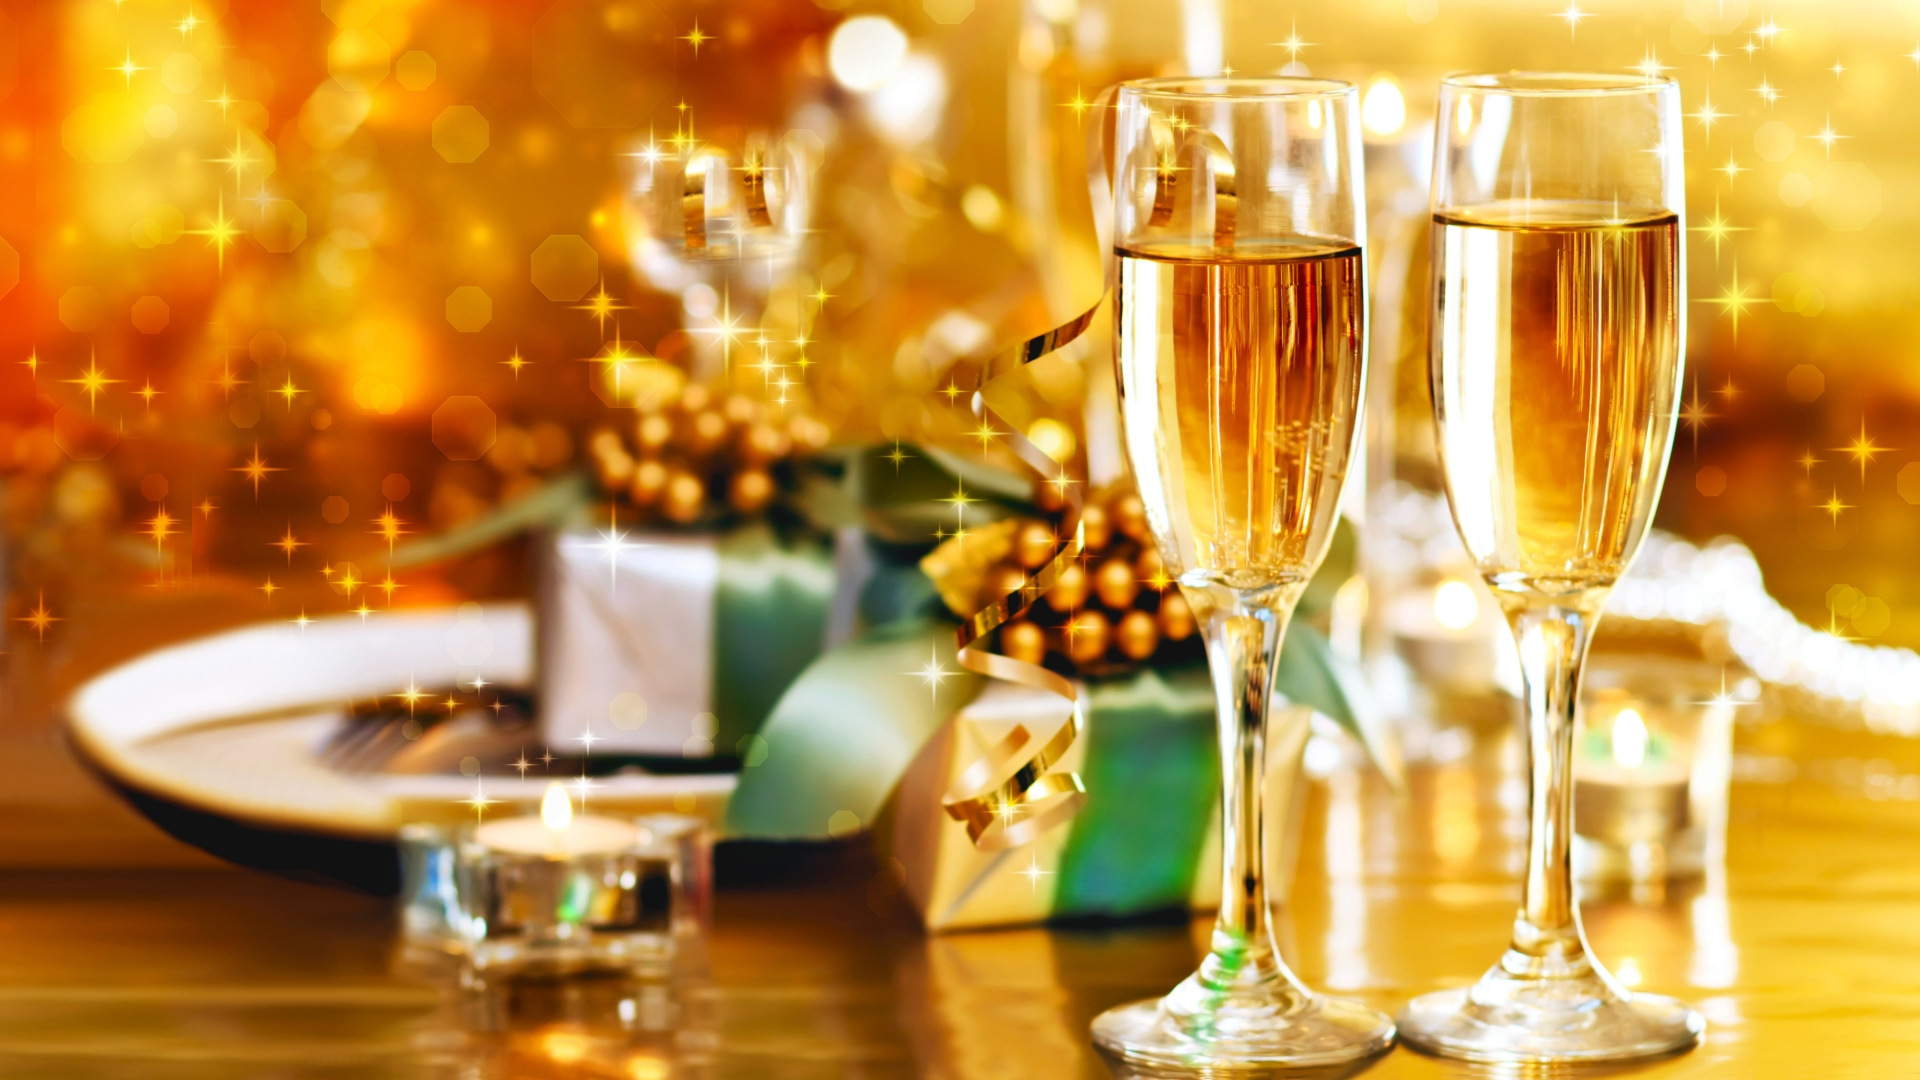 New Year Eve Party Background Hd 4k